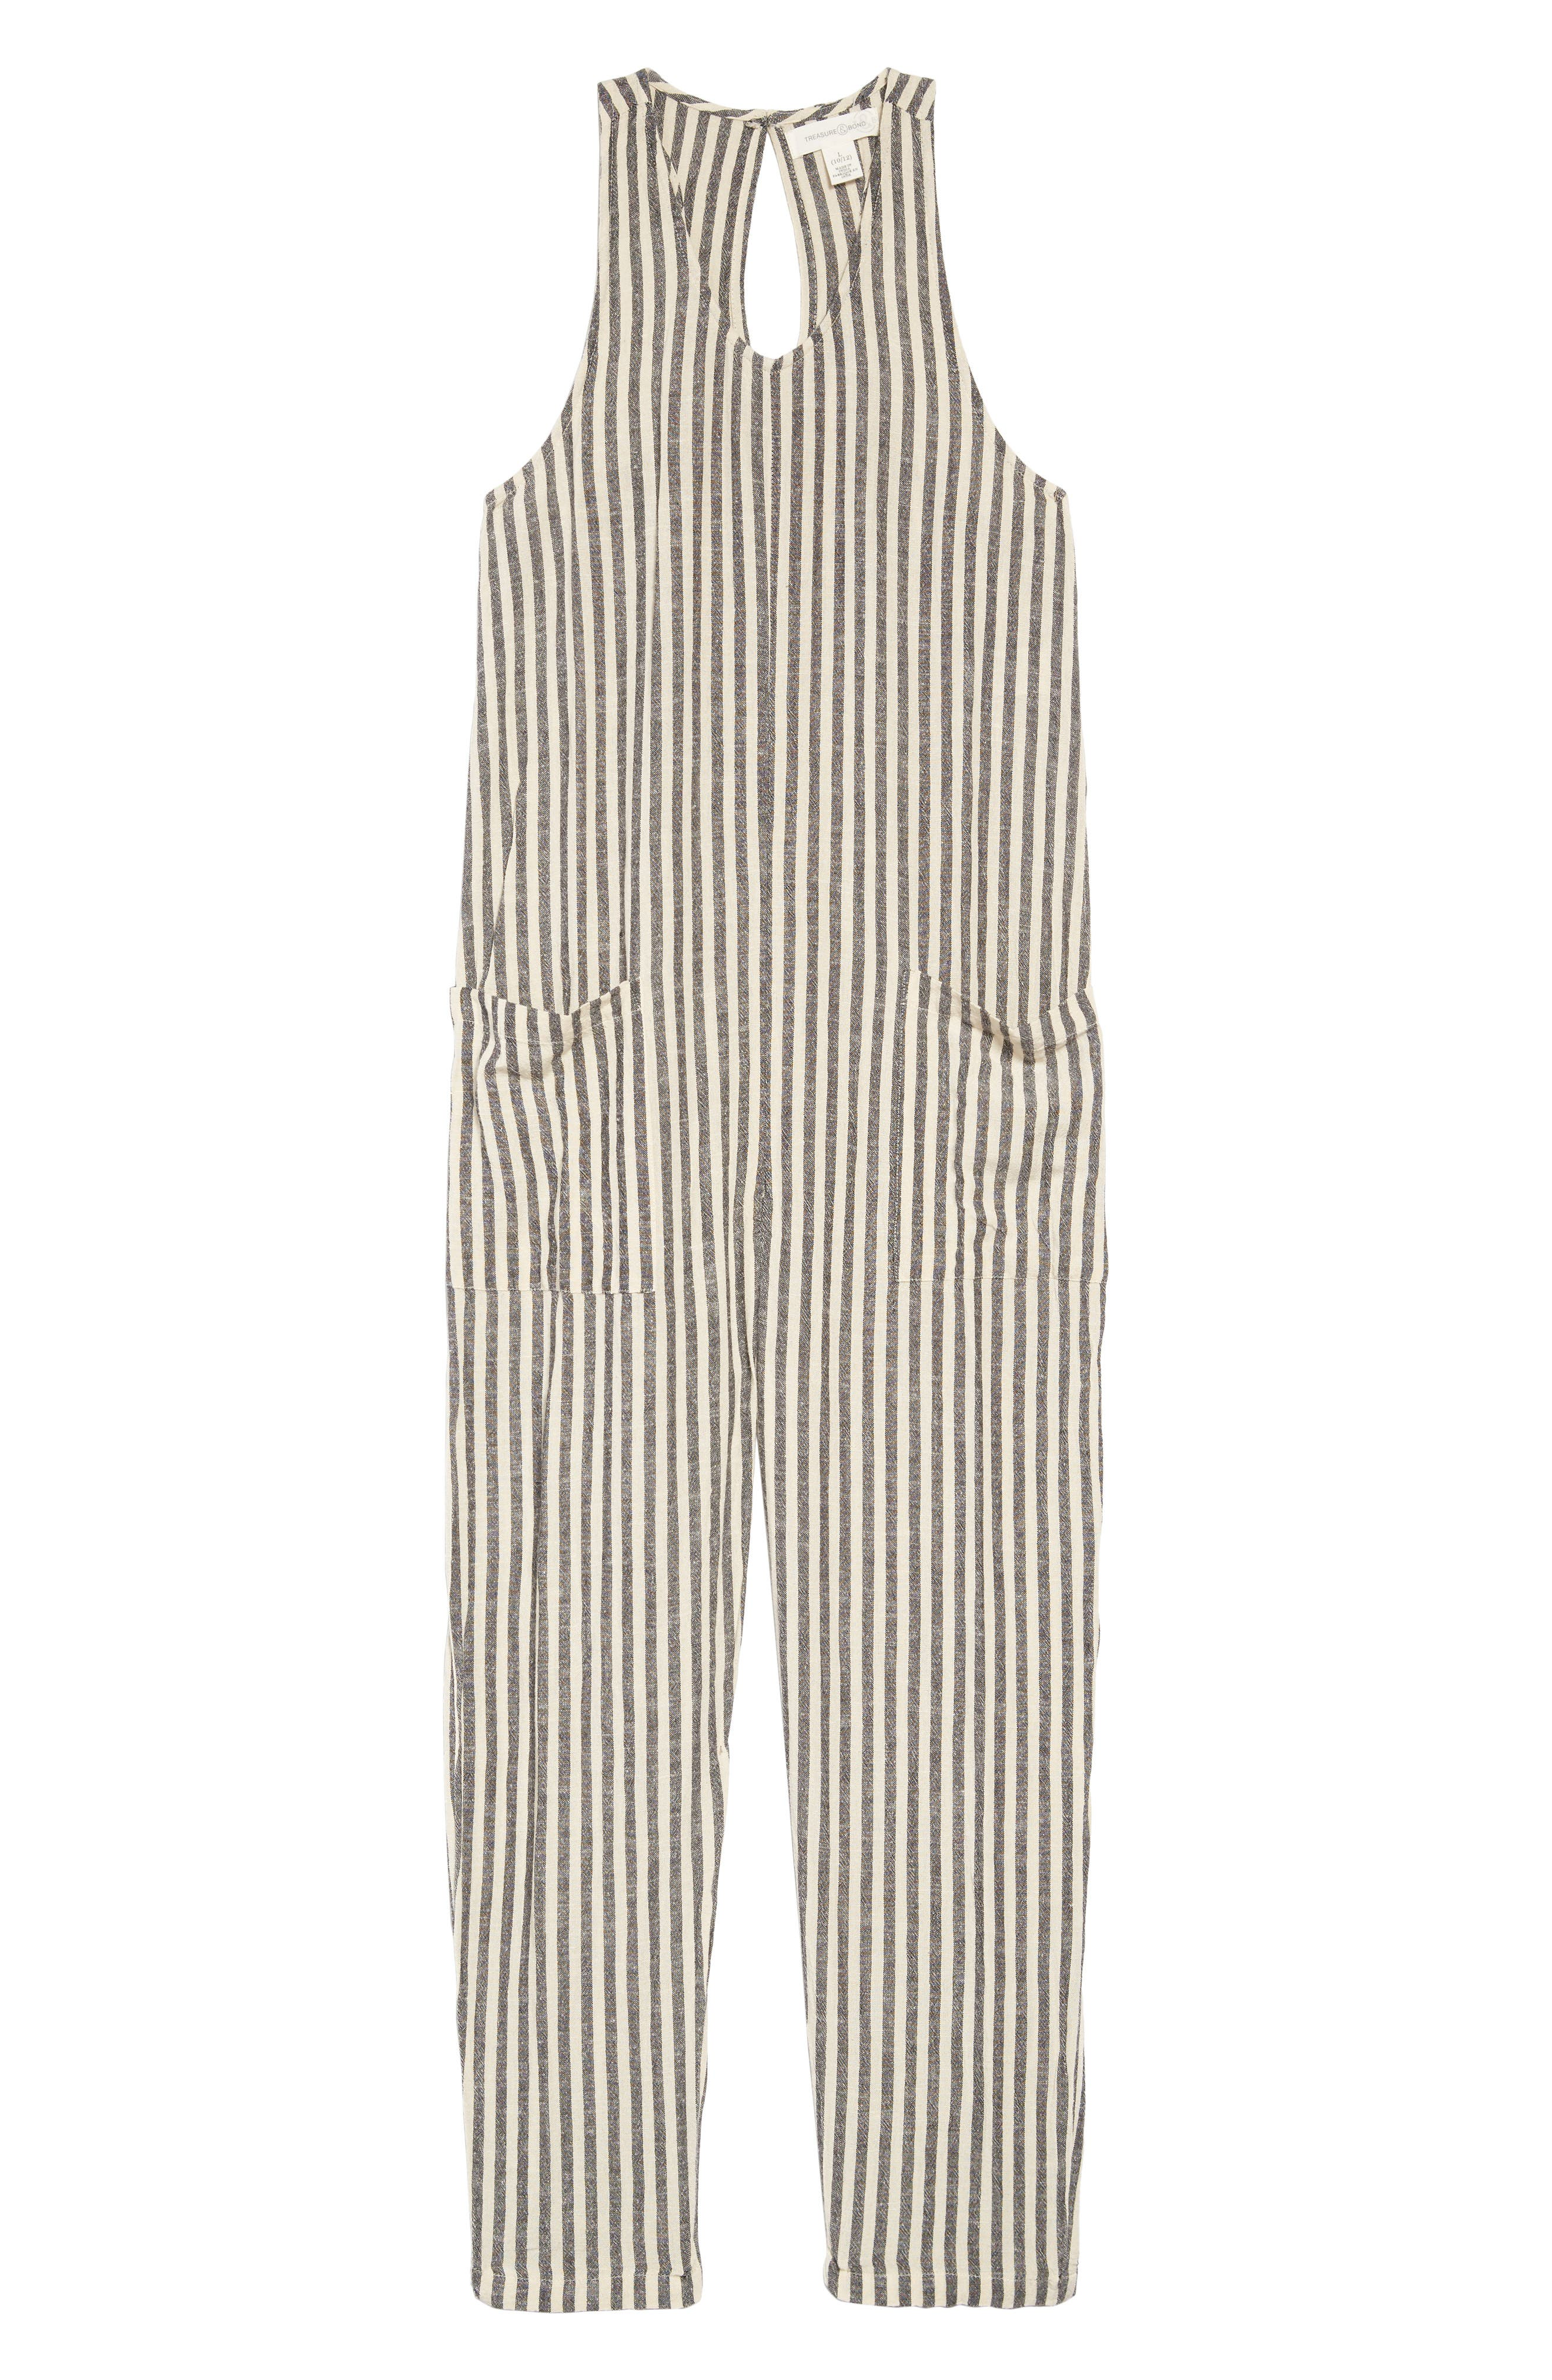 TREASURE & BOND, Stripe Jumpsuit, Main thumbnail 1, color, IVORY- BLACK EVEN STRIPE